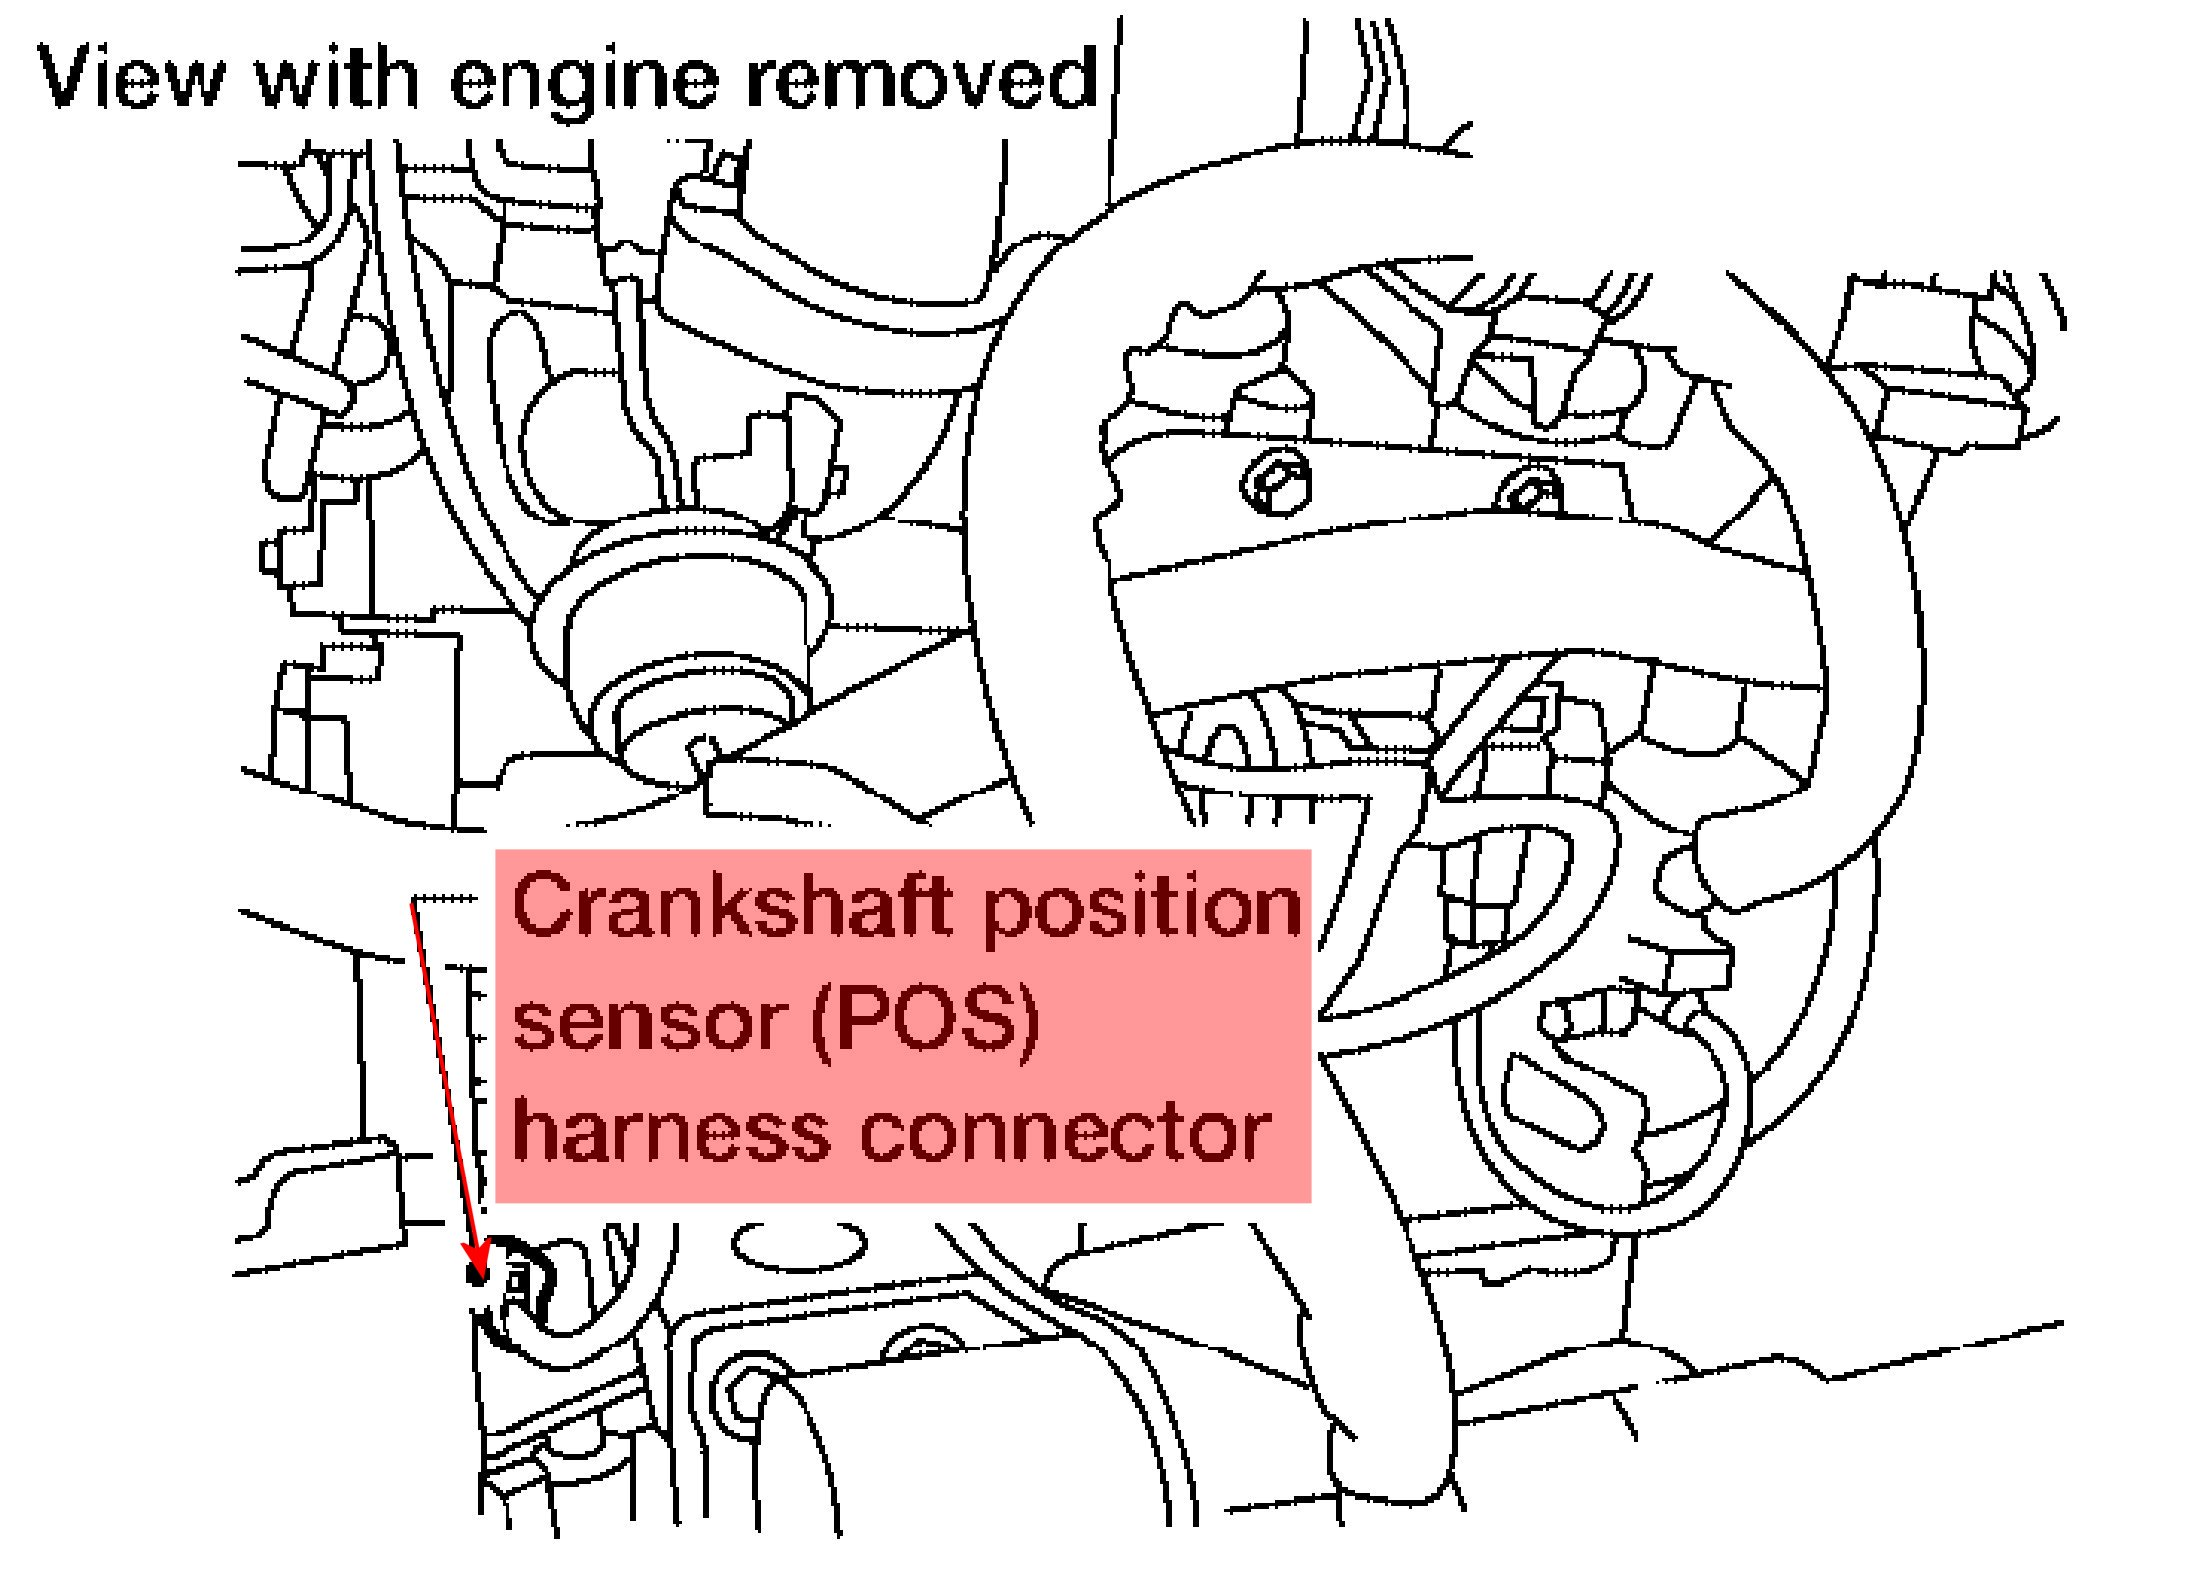 350z Engine Wiring Diagram likewise Nissan Altima Map Sensor Location additionally 3couq Crank Sensor Vehicle Speed Sensor furthermore Nissan Altima Wiring Diagram Further Pathfinder Throttle Body in addition Urgent Help Needed Crankshaft Position Sensor Connector T608112. on altima crankshaft position sensor location